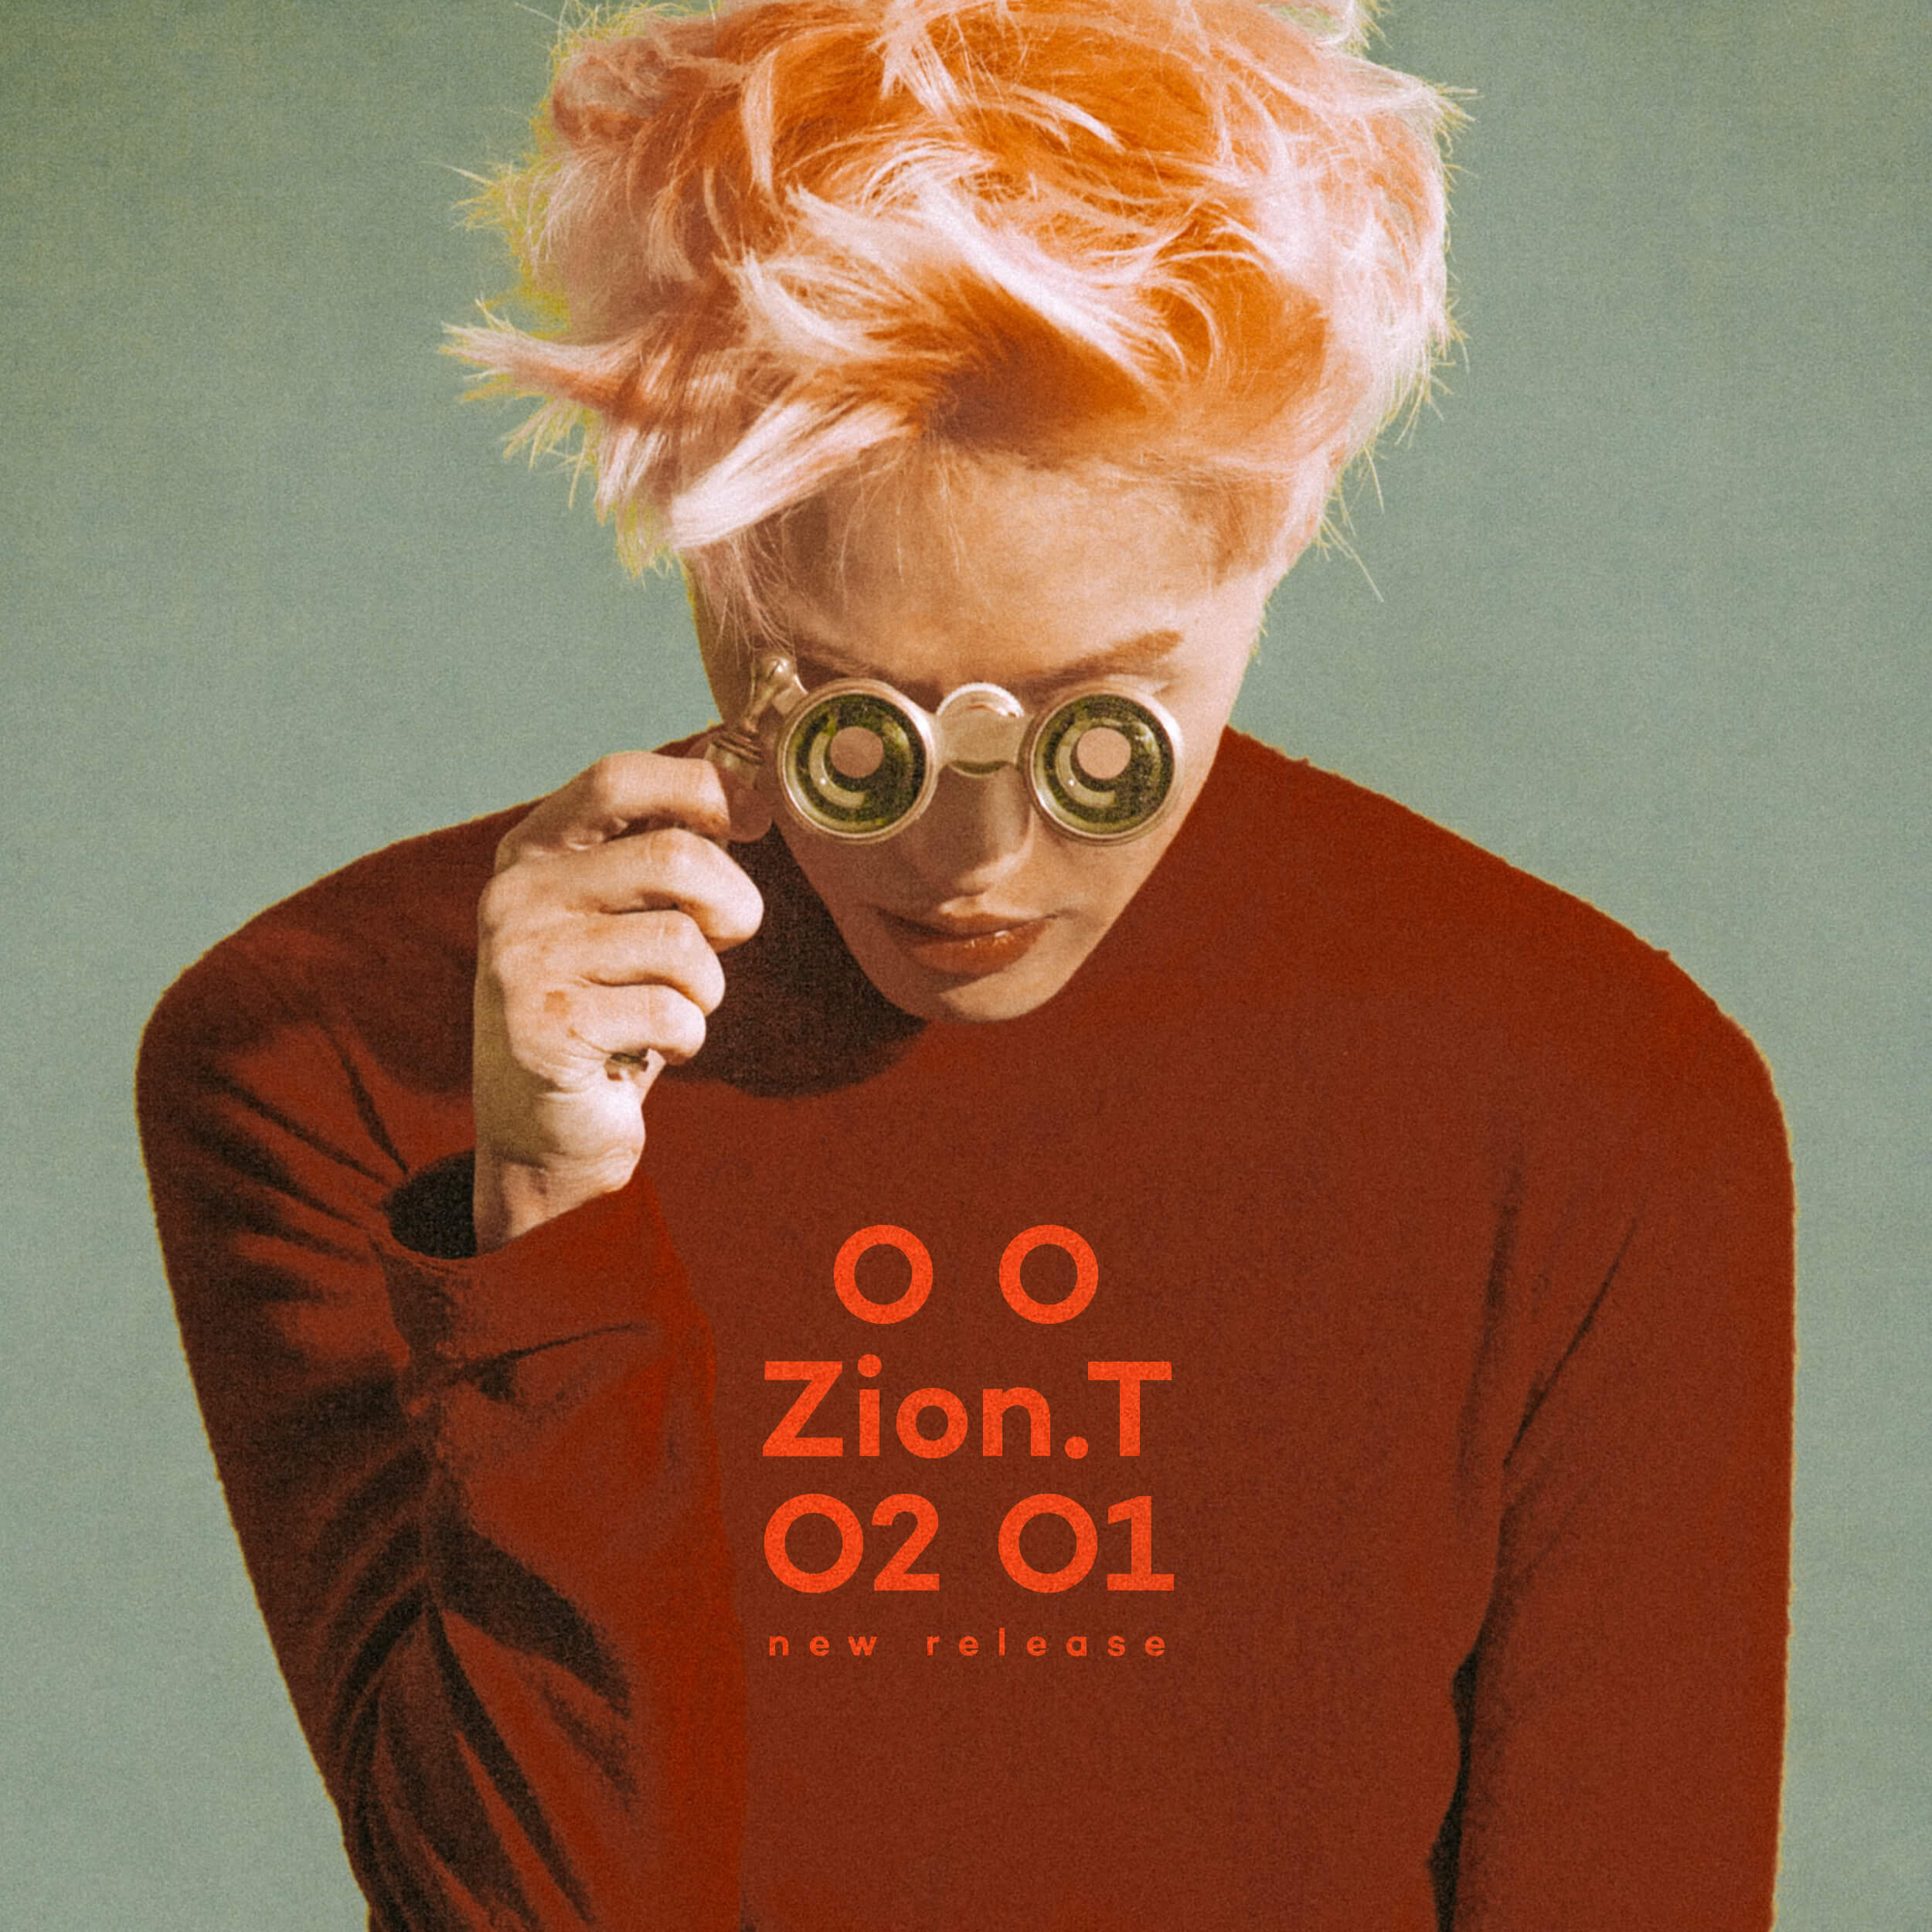 [ZIONT]OO(F) (1)